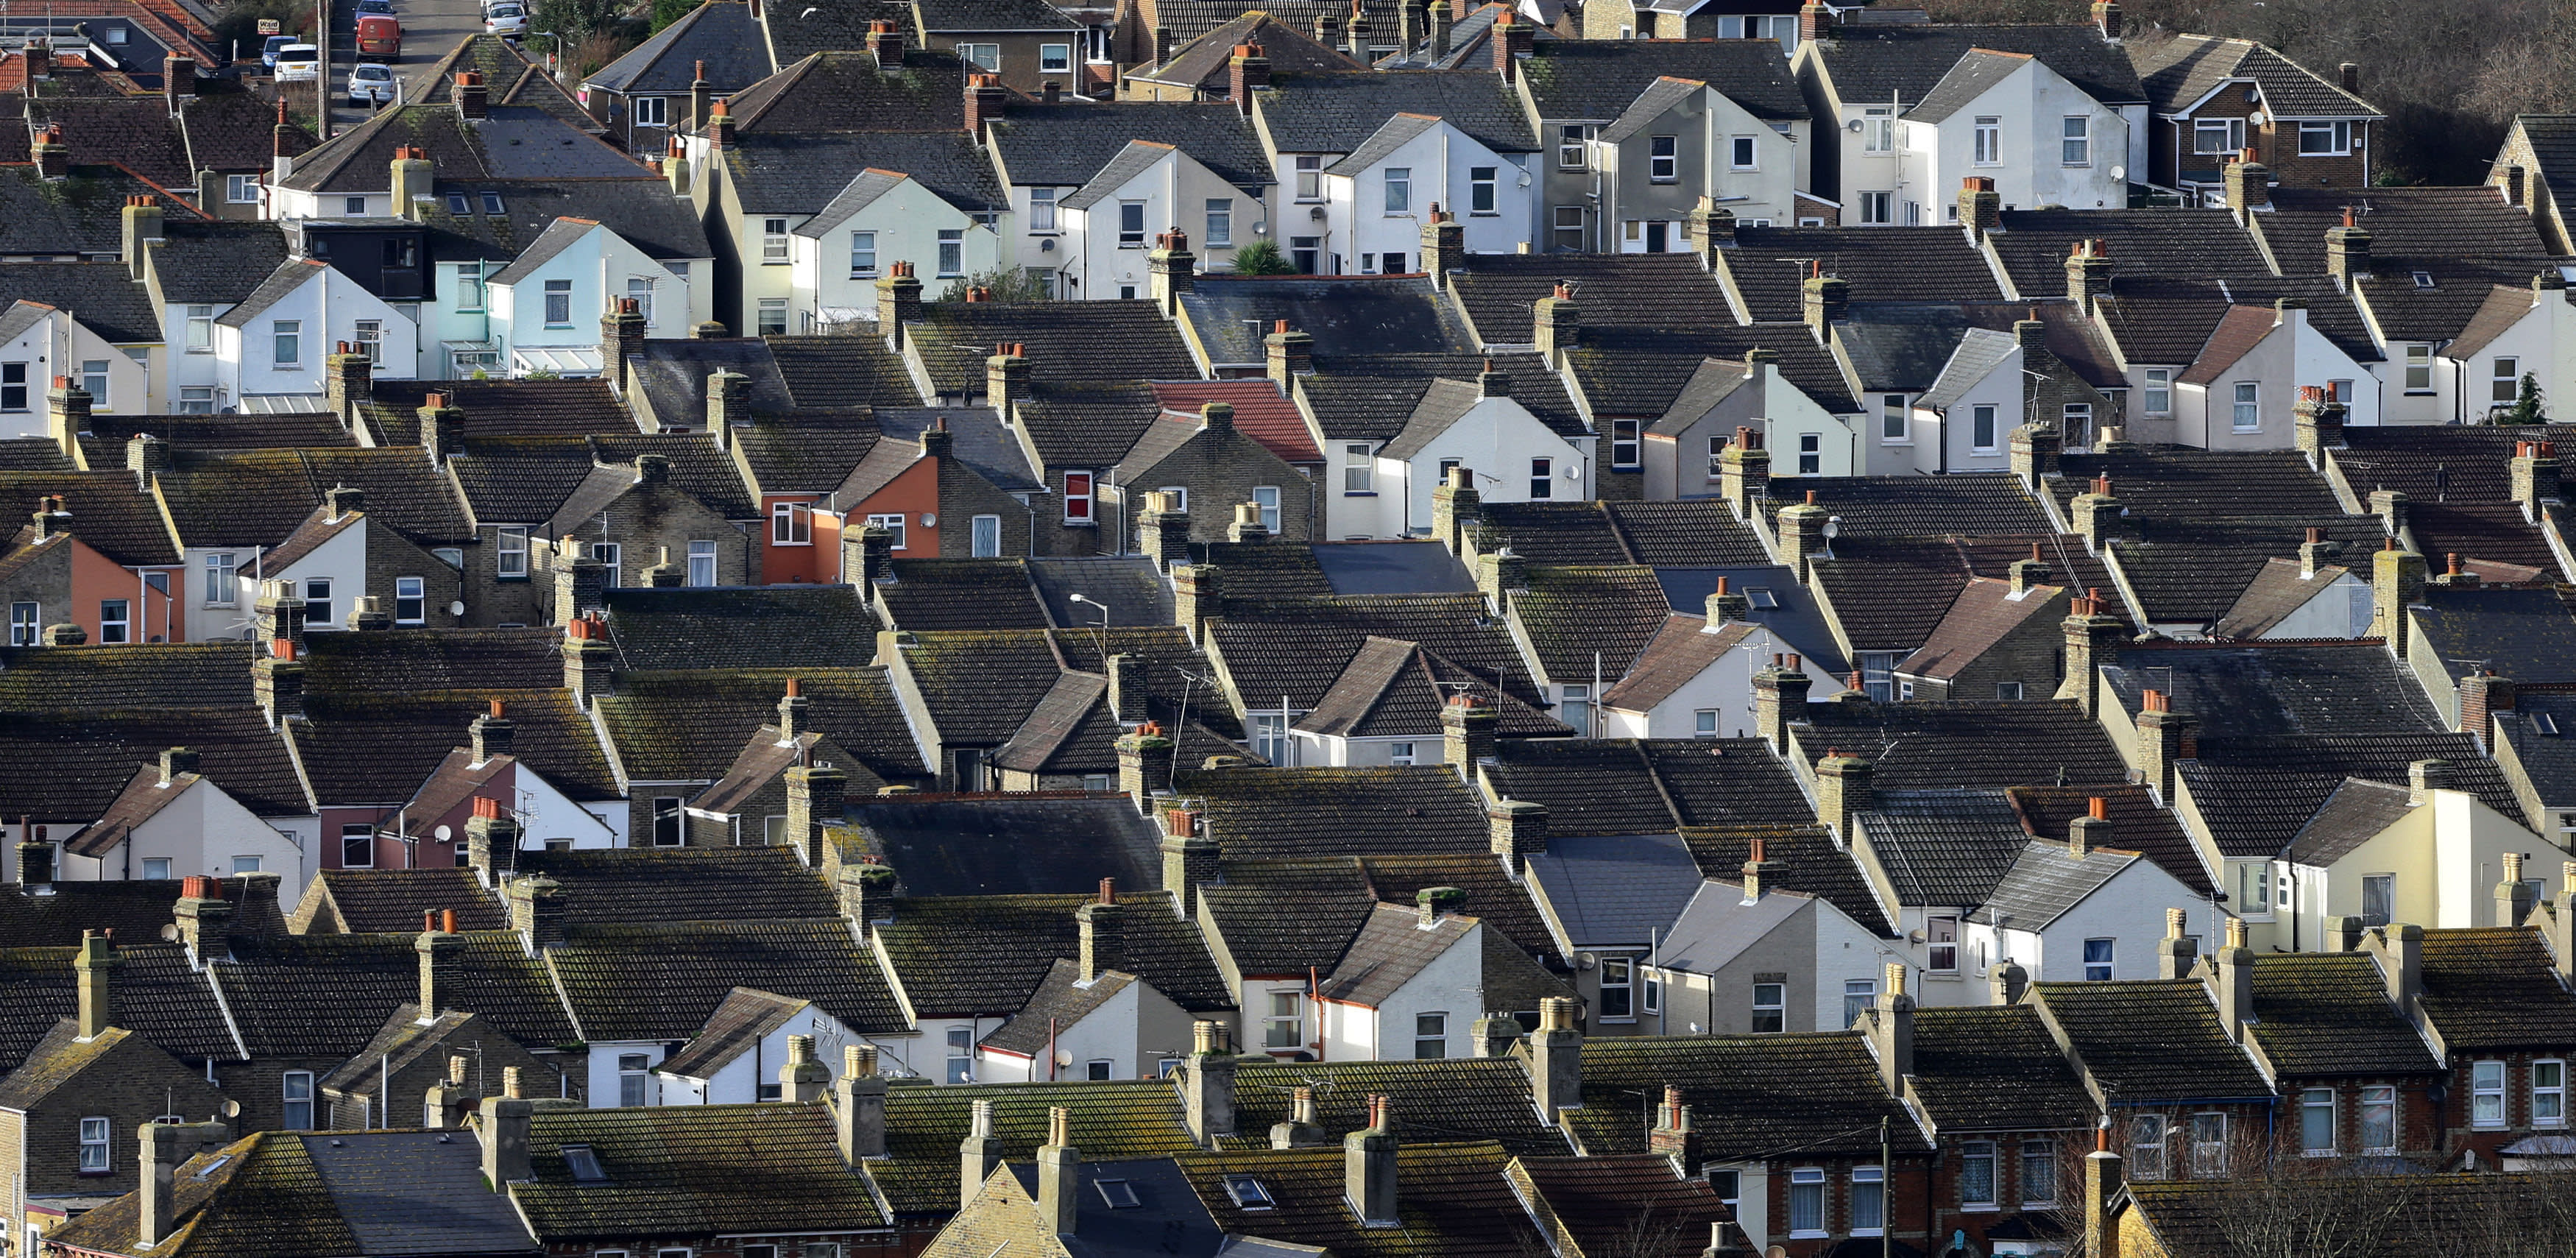 'Record' number of landlords to leave the market